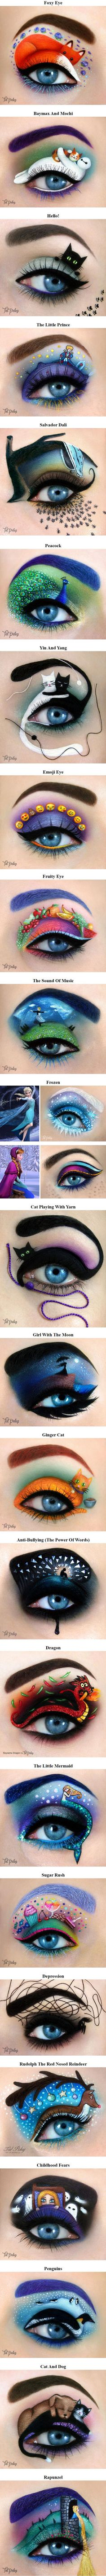 This Artist Uses Eyes As A Canvas For Art (By Tal Peleg)